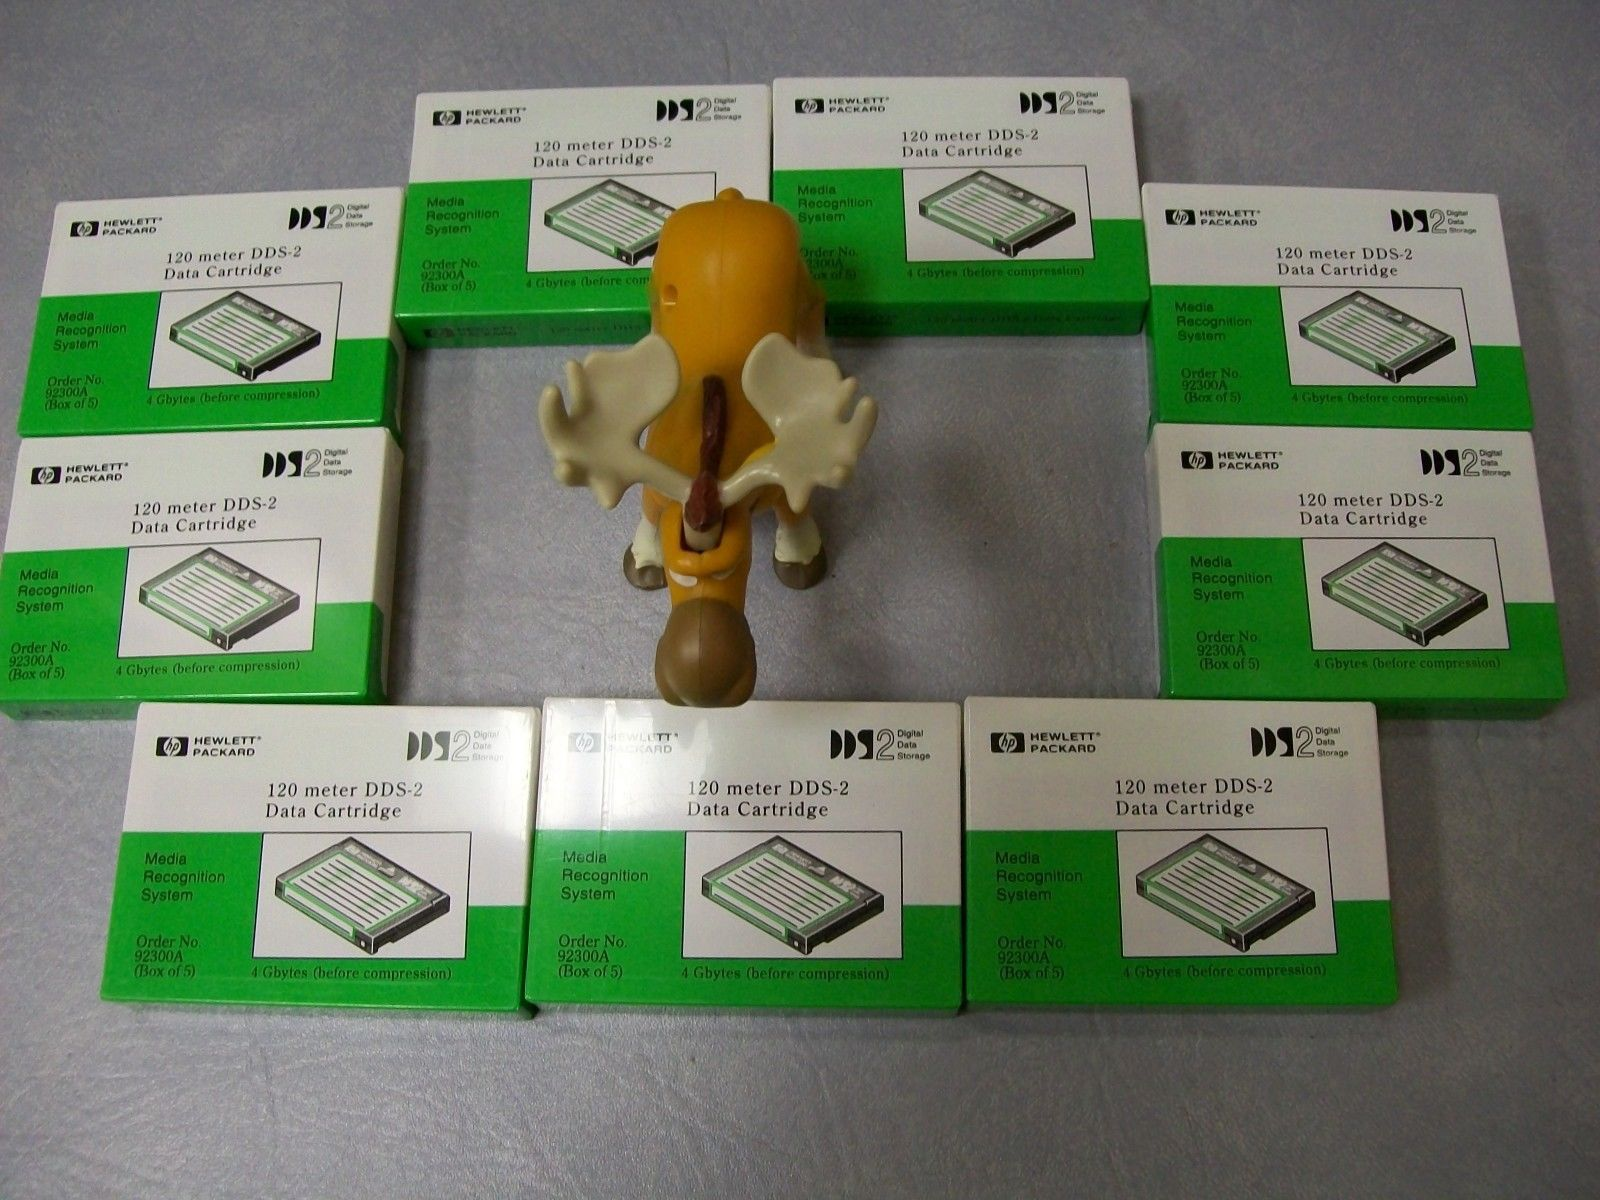 Primary image for Hewlett Packard DDS Data Cartridge 120 Meter Lot of 9